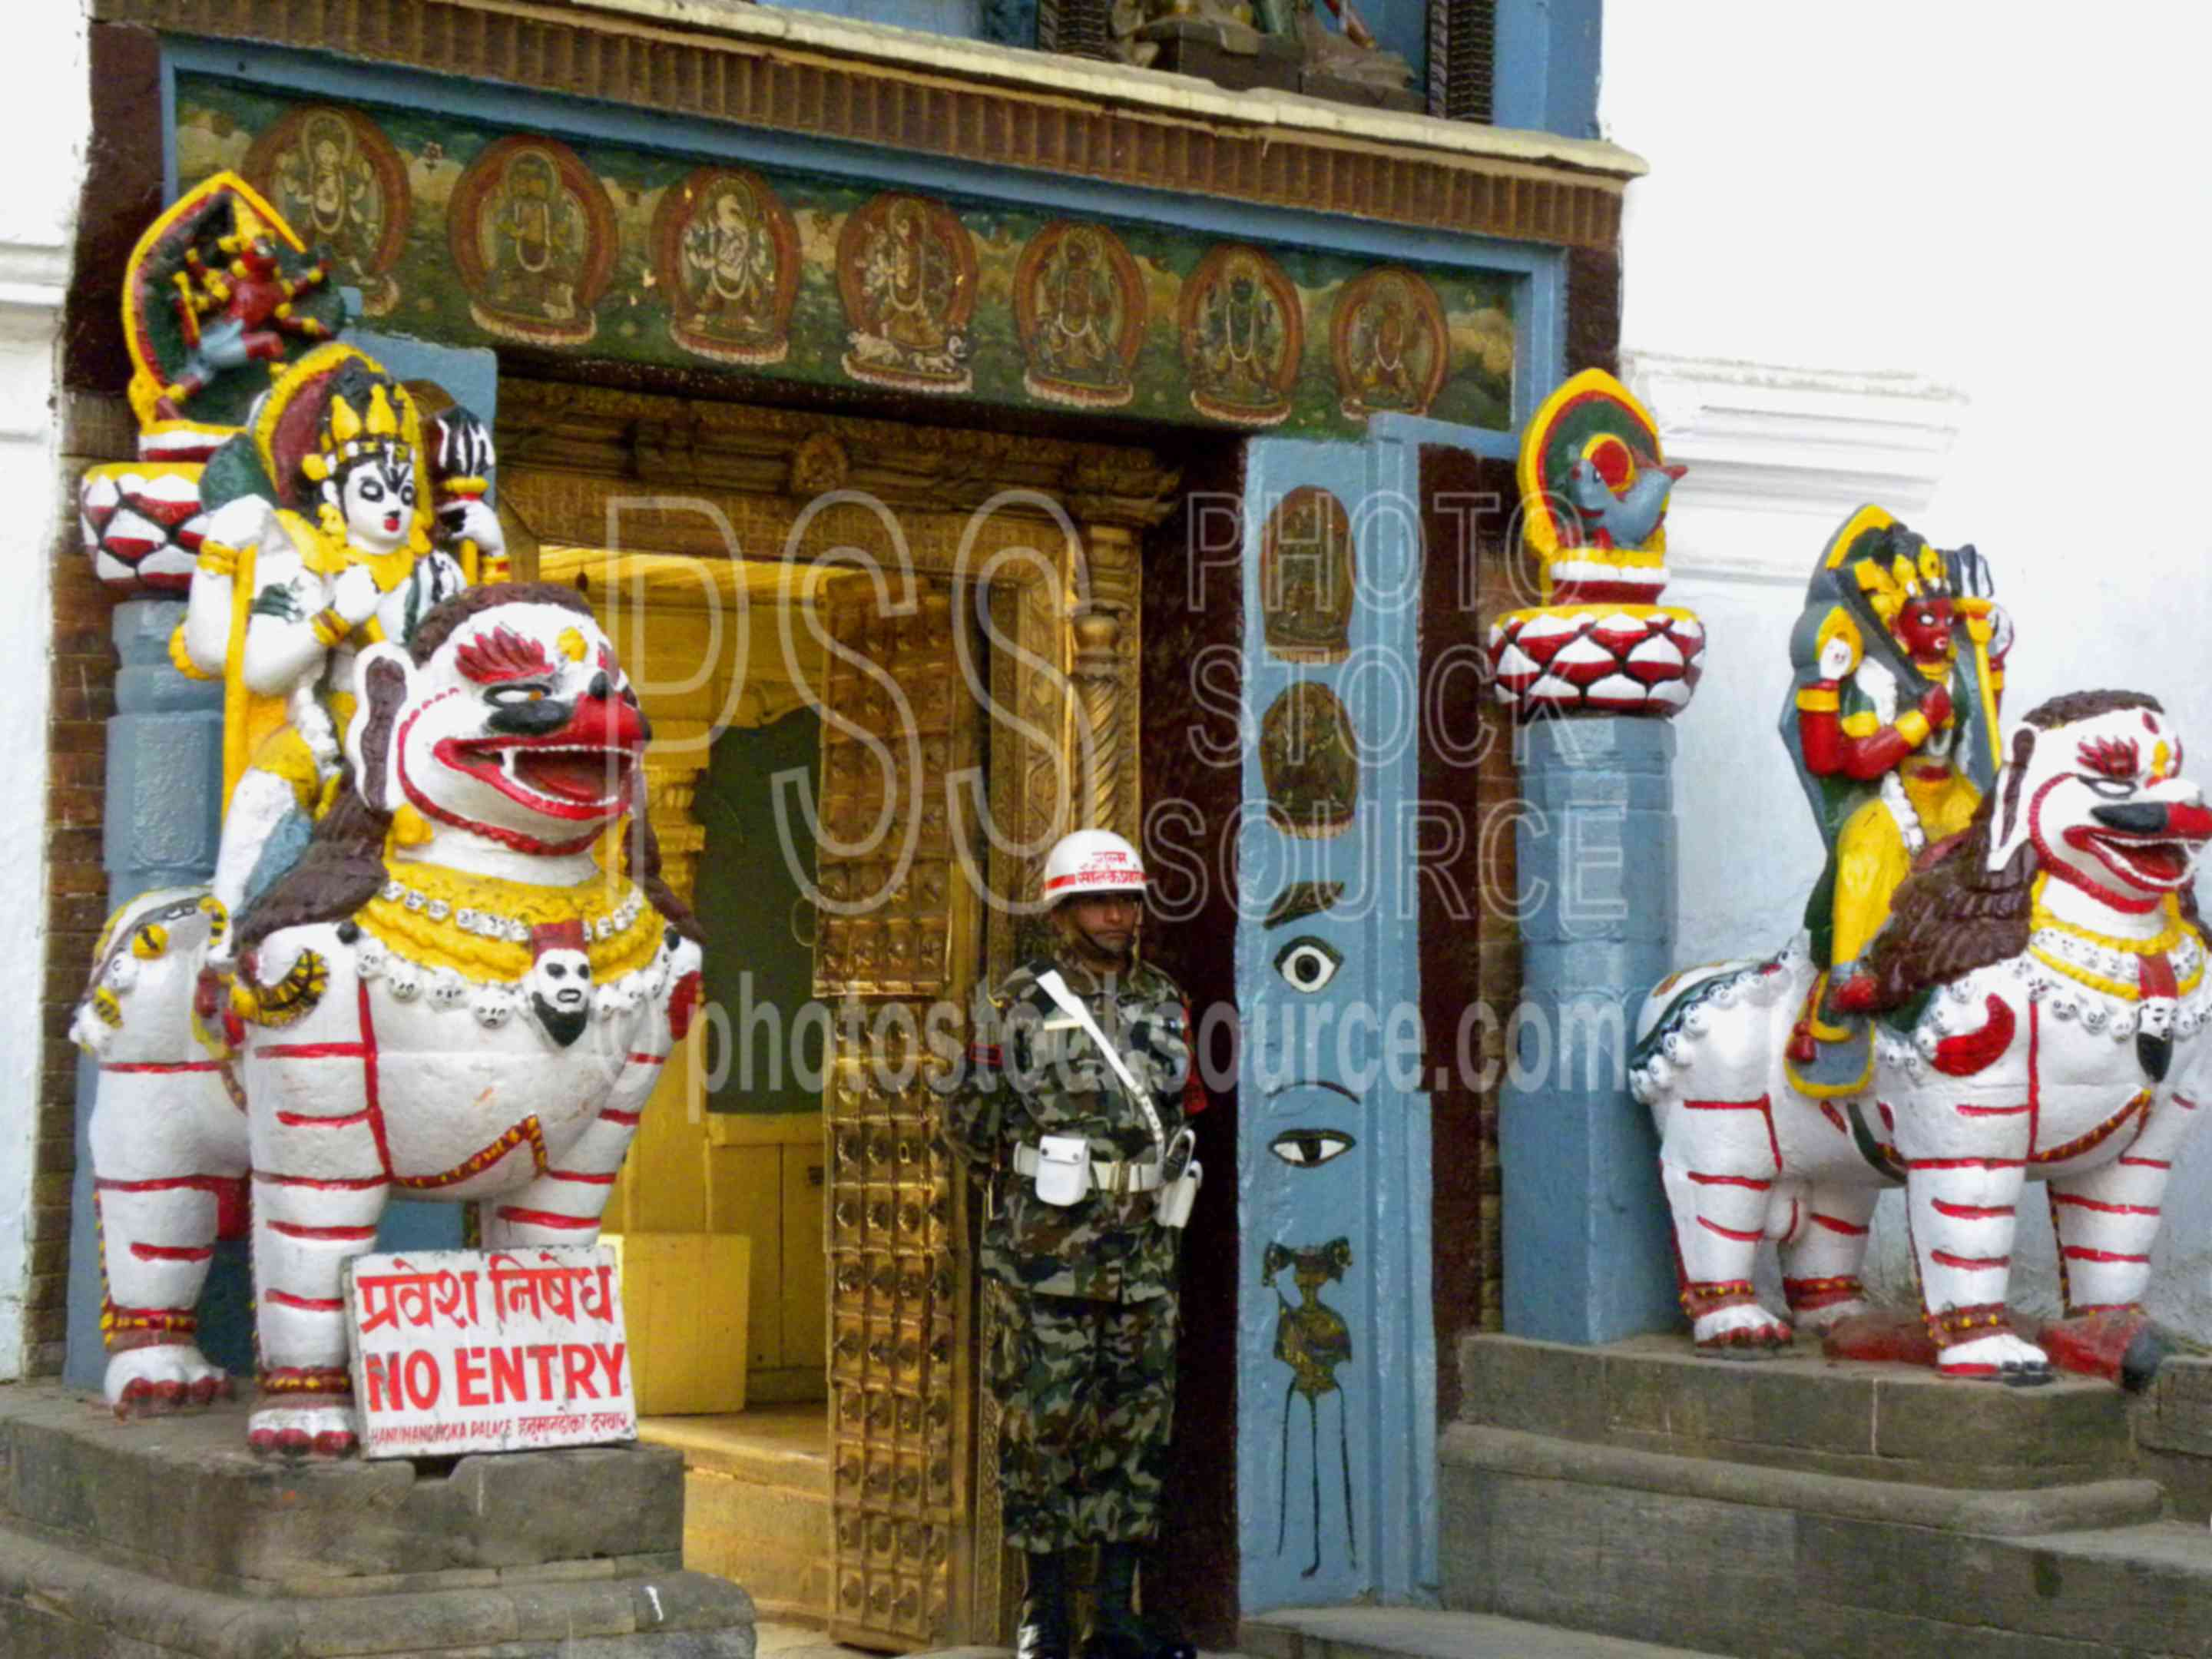 Hanuman Dhoka Palace Entrance,temple,religious,courtyard,statue,hanuman,shrine,candles,offerings,temples